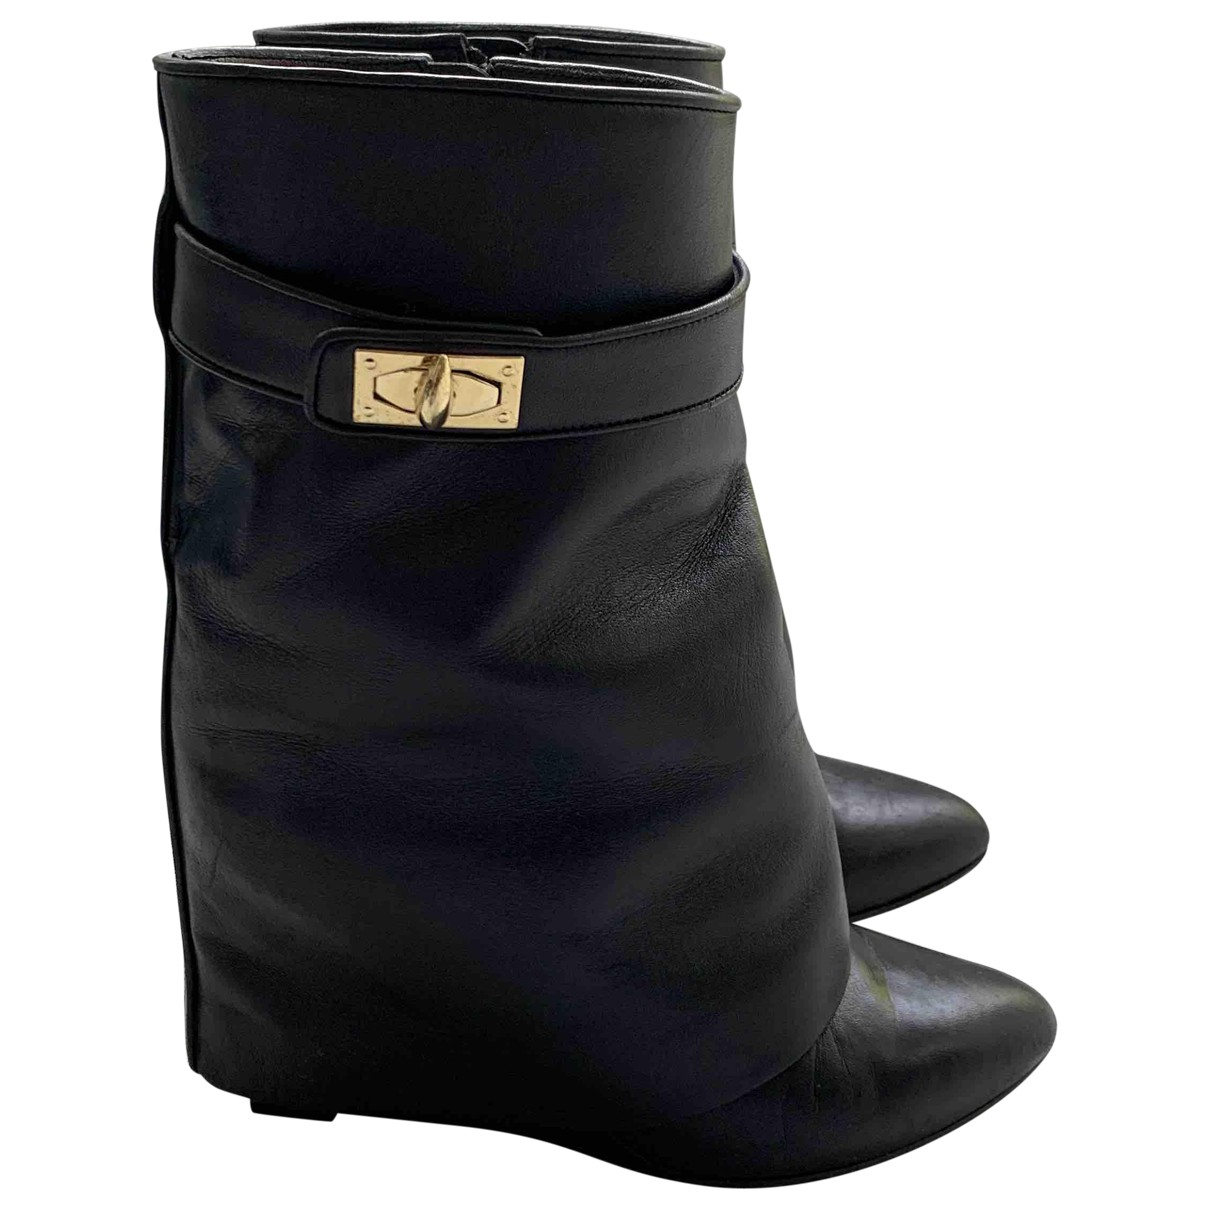 Givenchy Shark Black Leather Ankle boots for Women 39 EU